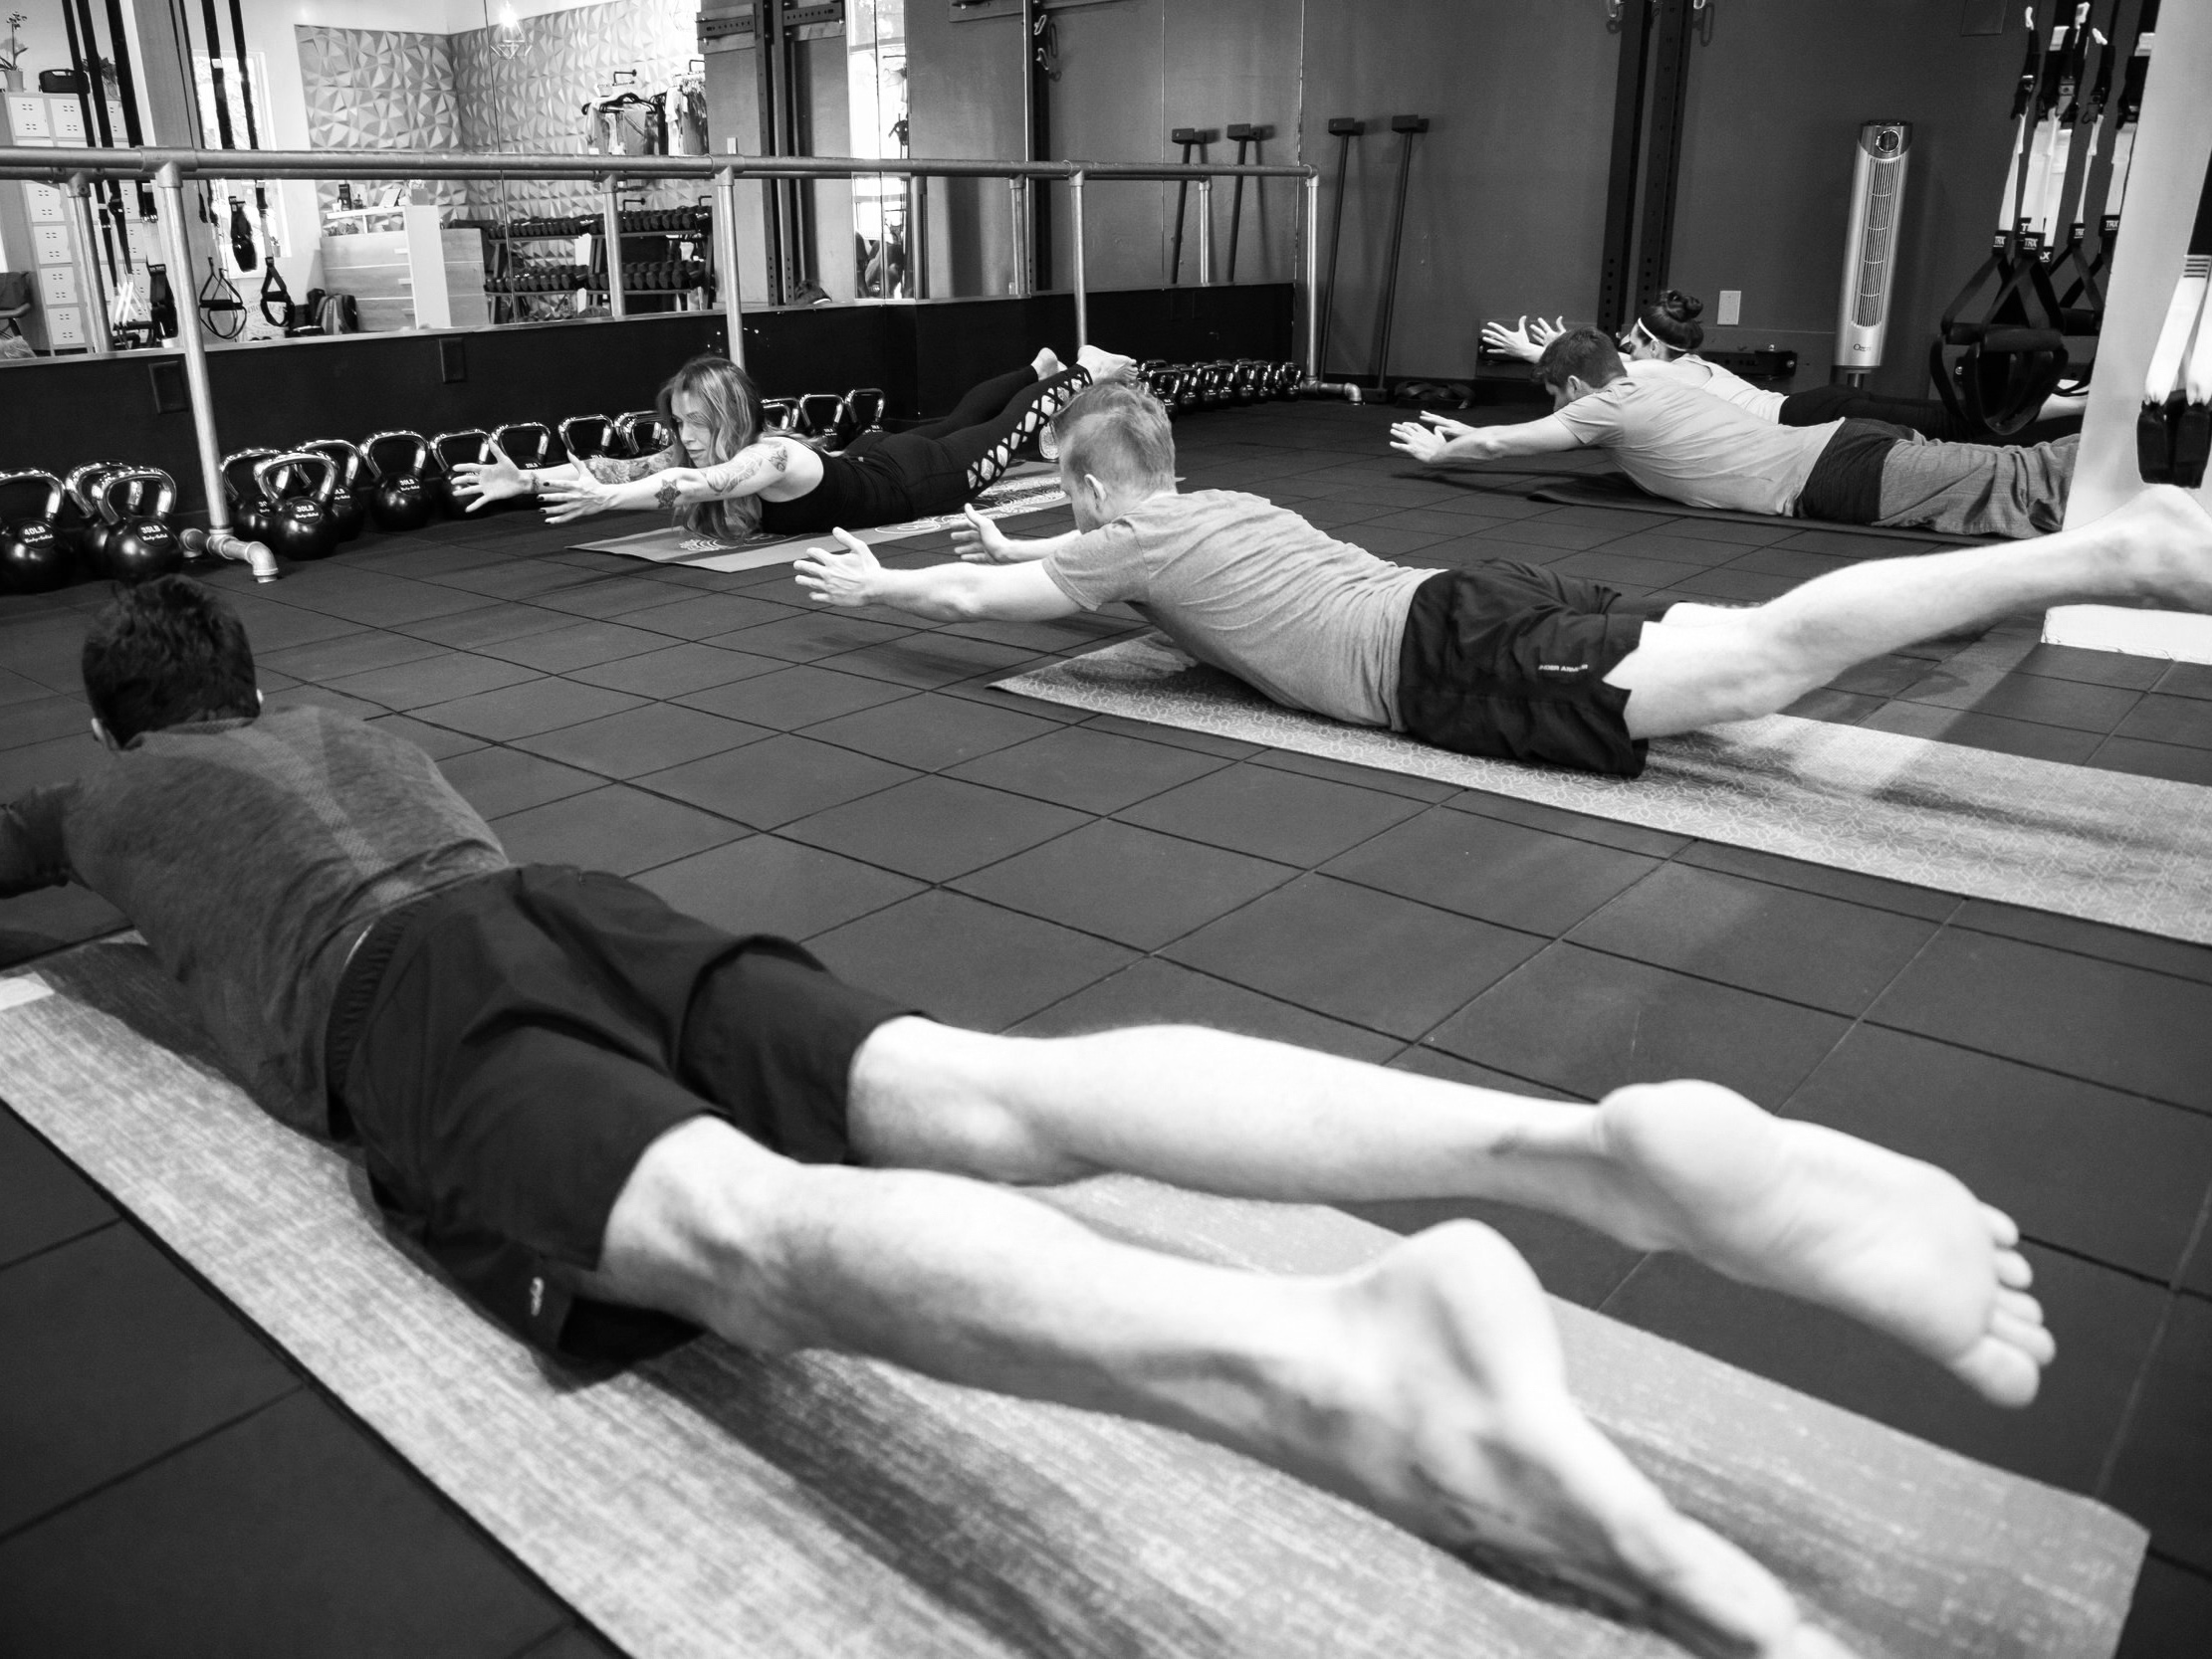 Mat pilates - Pilates is very small movements all coming from your core, to help us re-learn to use these small stabilizing muscles to rebalance our bodies, very low impact this is a great addition to anyones regular training regimen.